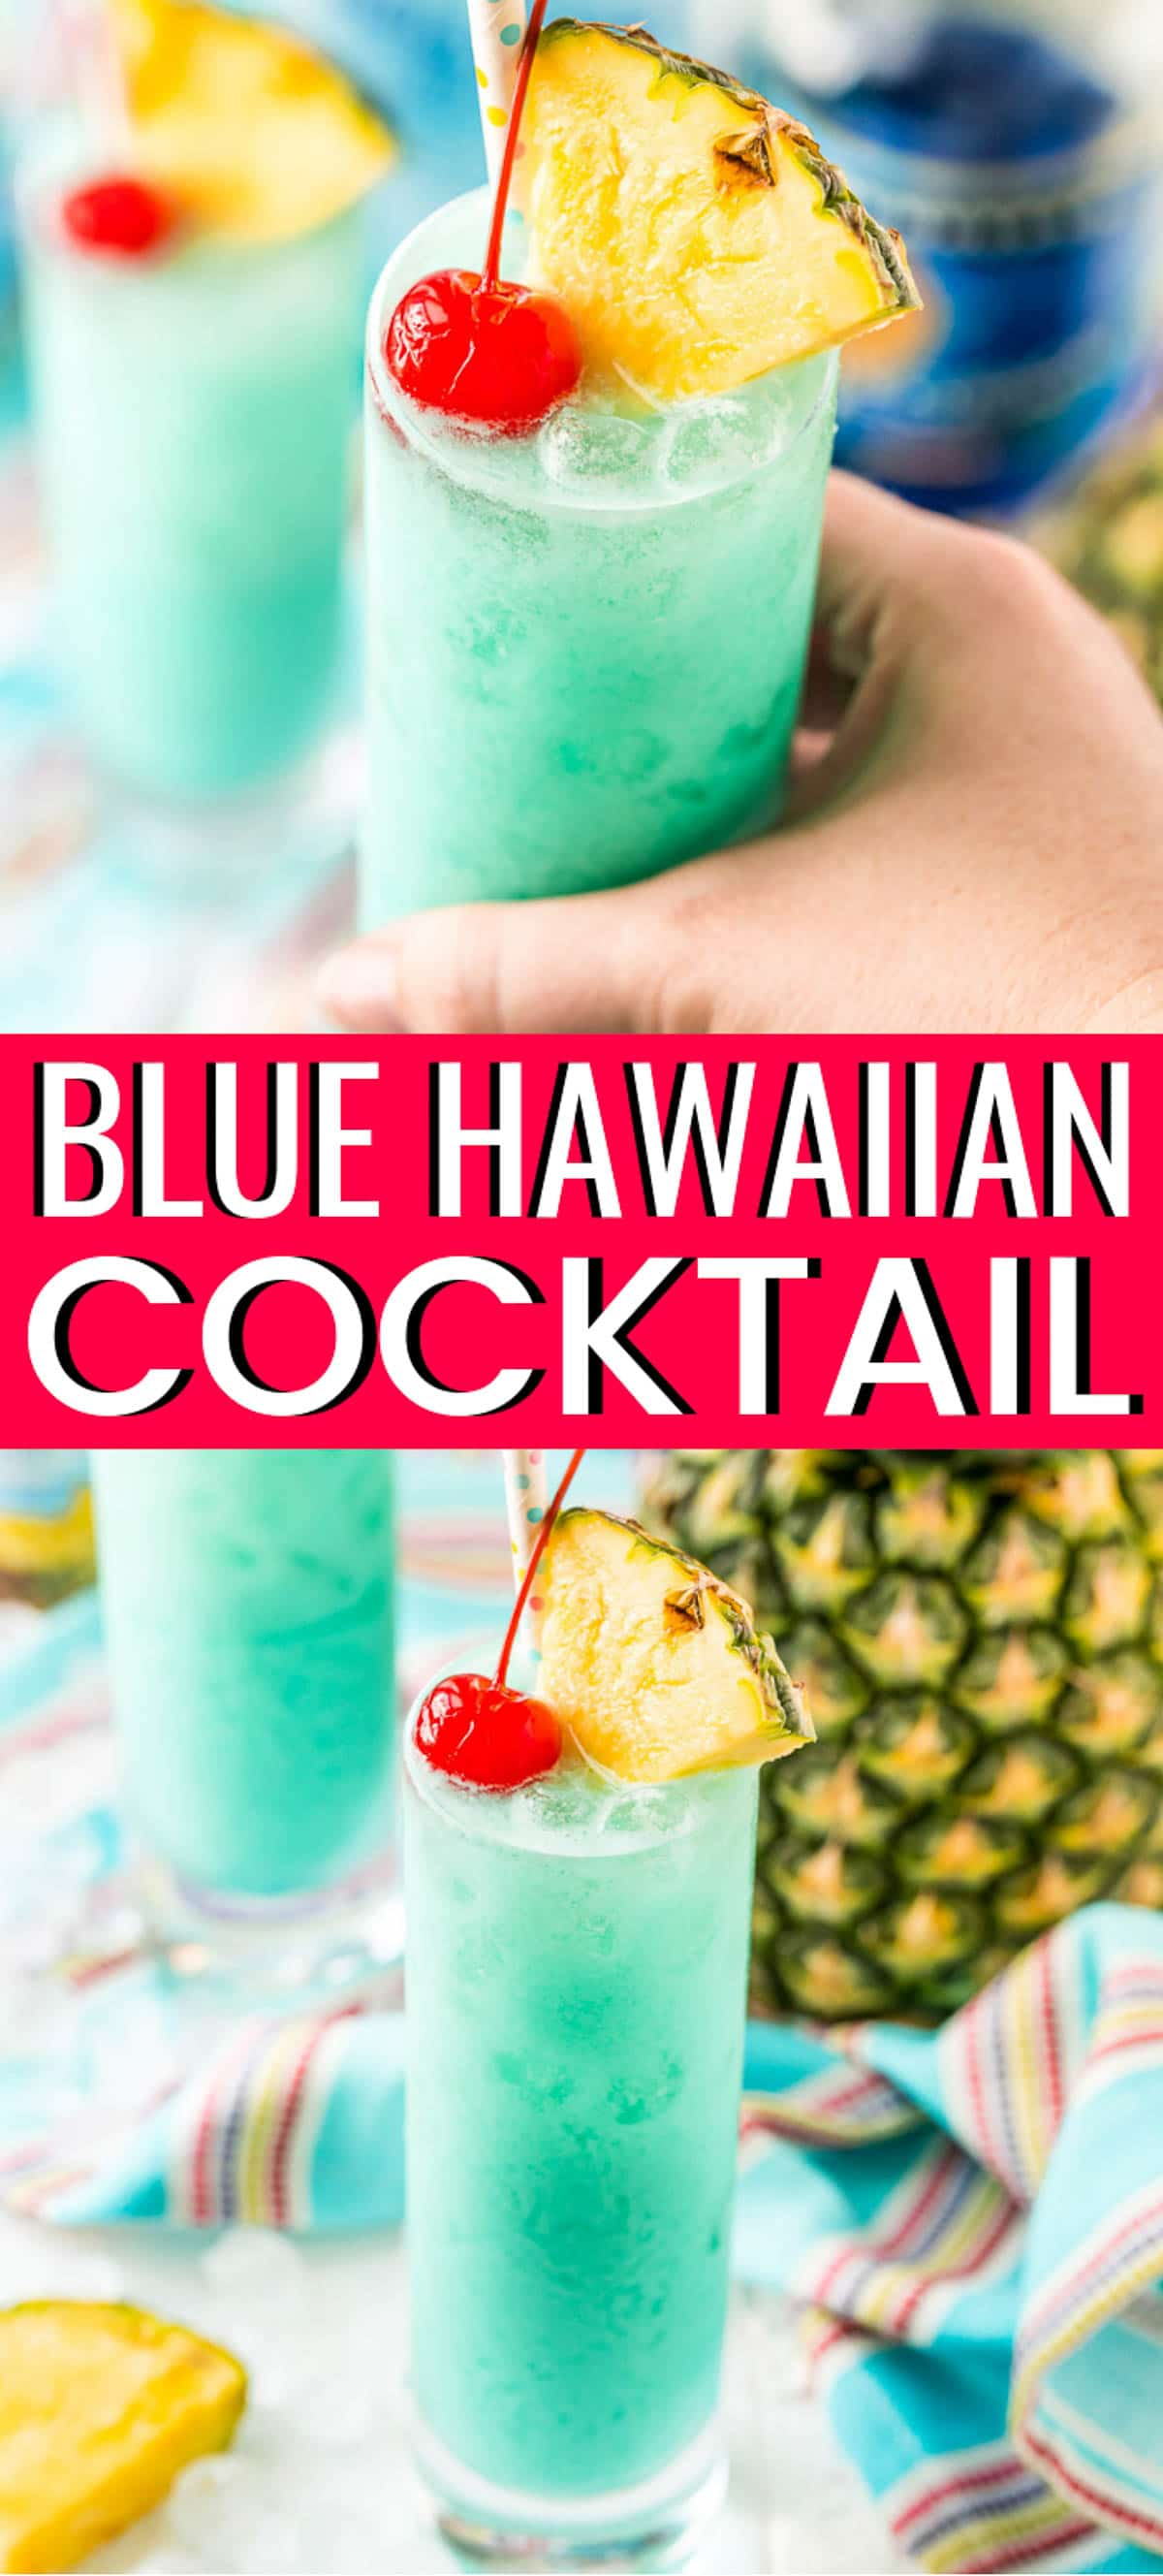 Blue Hawaiian Cocktail is a tropical drink recipe made with rum, blue curaçao, coconut cream, and pineapple juice. Serve it on the rocks or frozen - either way, it's delicious! via @sugarandsoulco